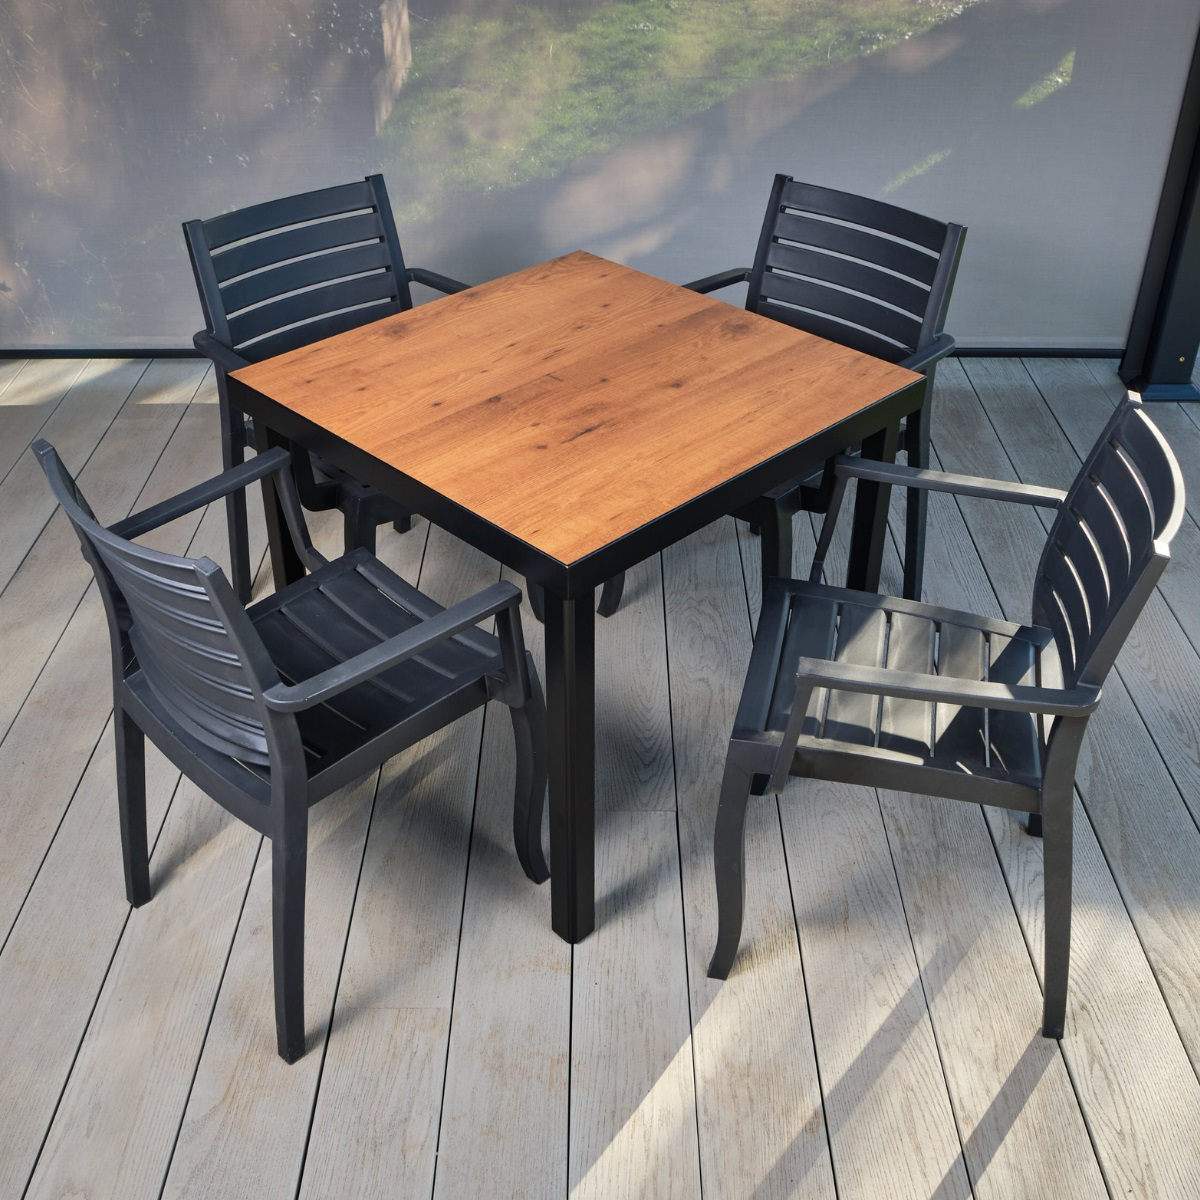 A budget range outdoor dining table and chairs set. Dark grey frames with a laminate wood effect table top. Chairs set round the table on a grey outdoor deck